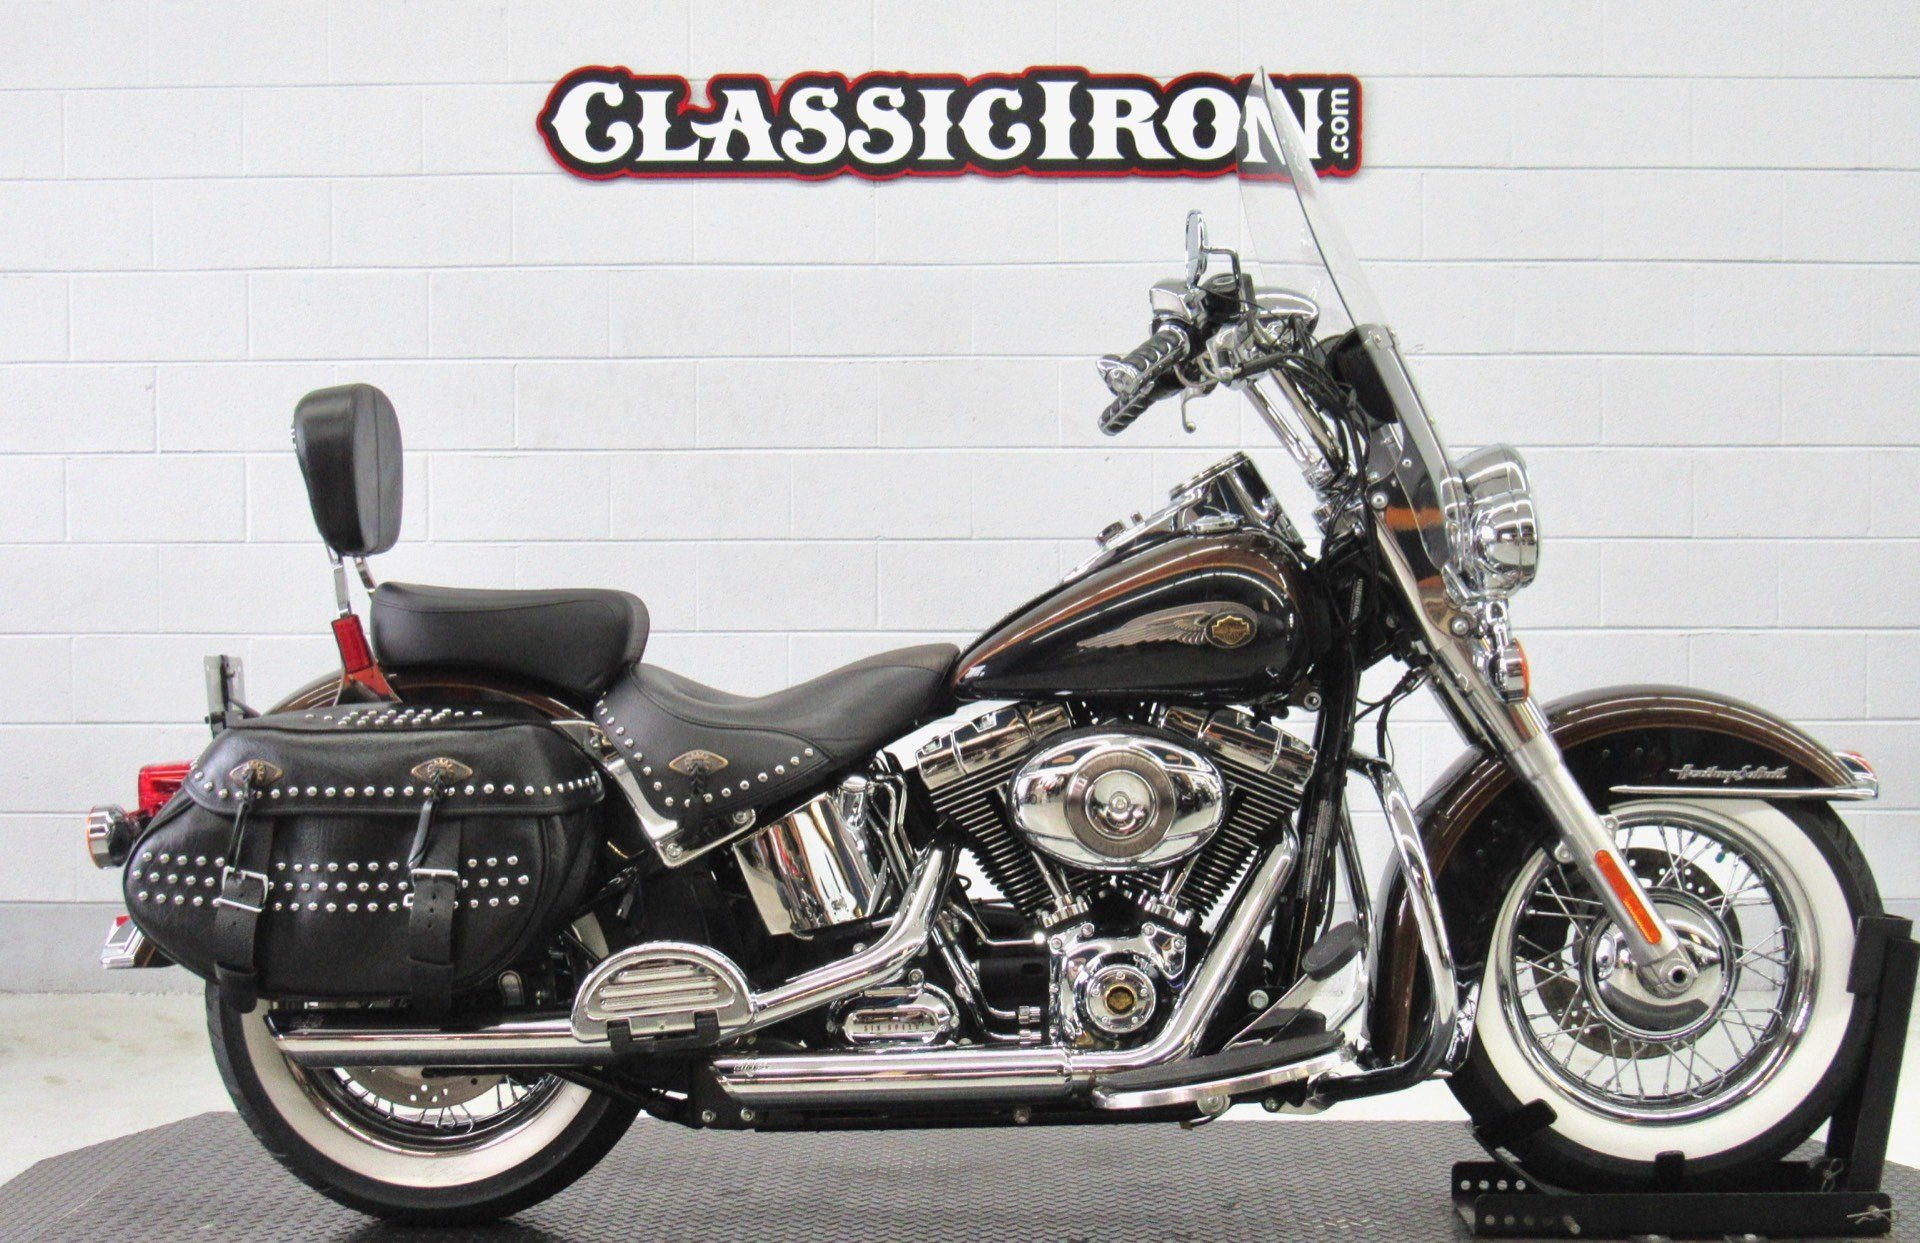 2013 Harley-Davidson Heritage Softail® Classic 110th Anniversary Edition in Fredericksburg, Virginia - Photo 1